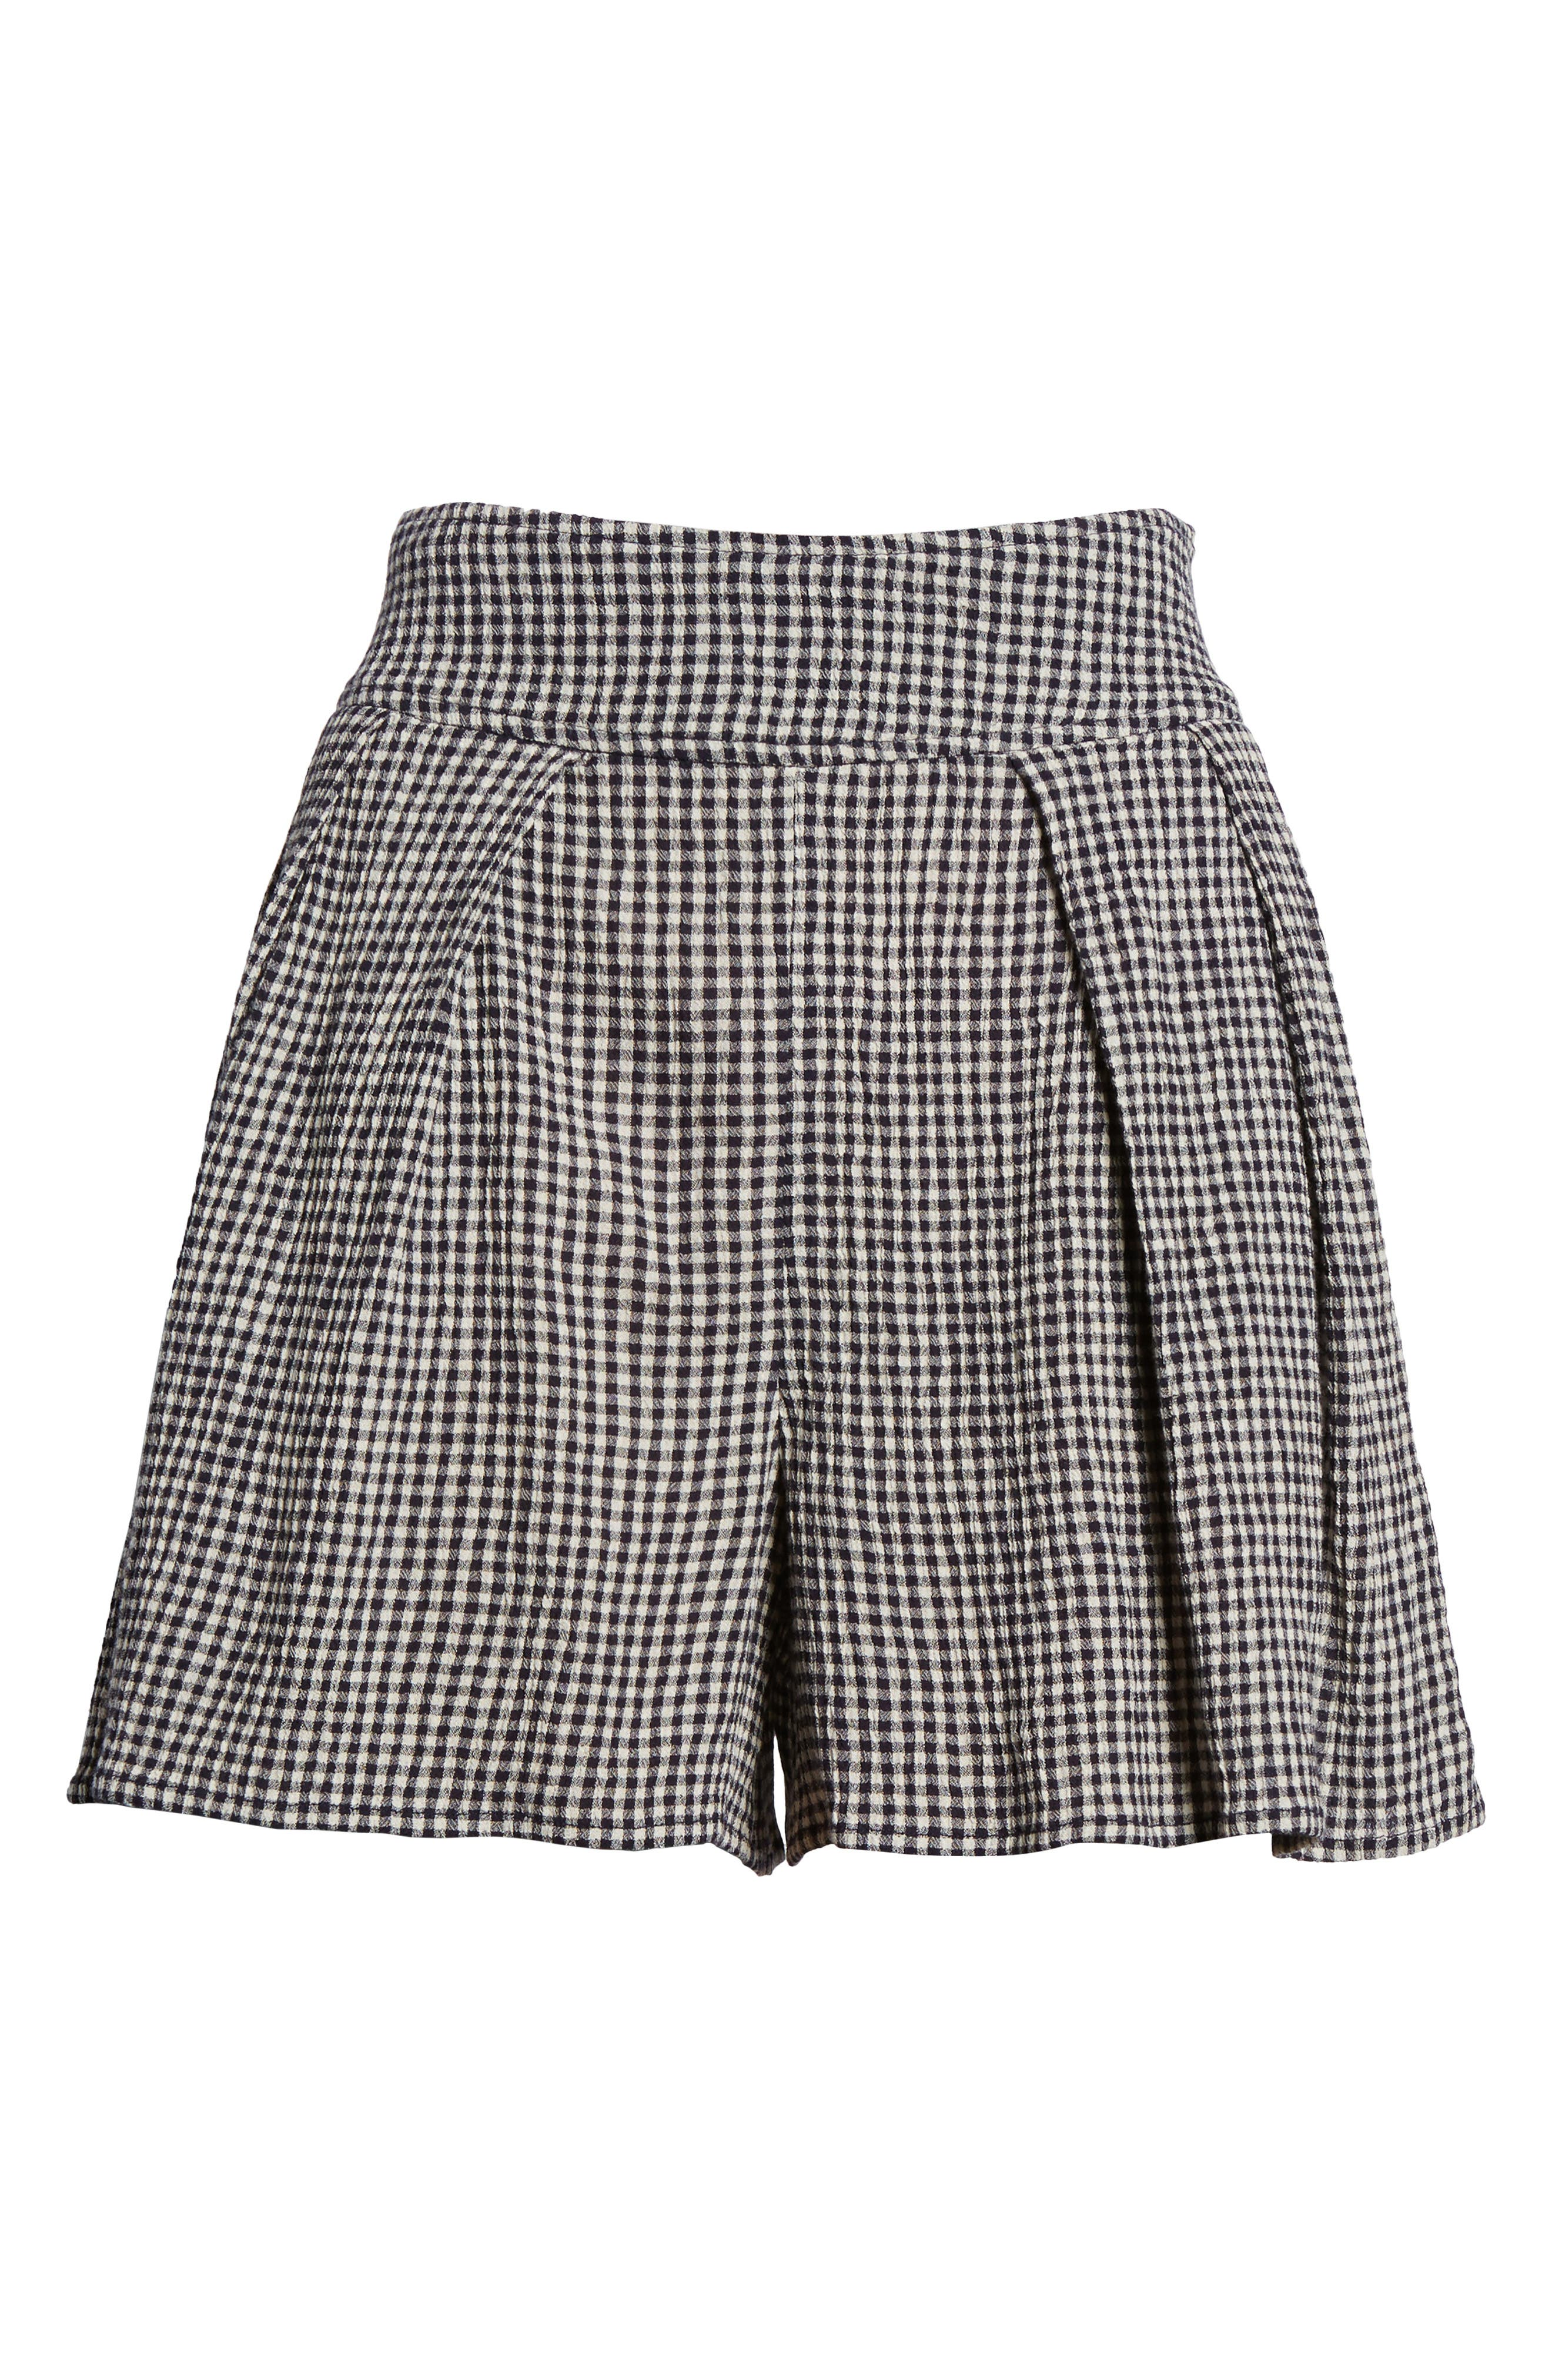 Pleated Gingham Shorts,                             Alternate thumbnail 6, color,                             001